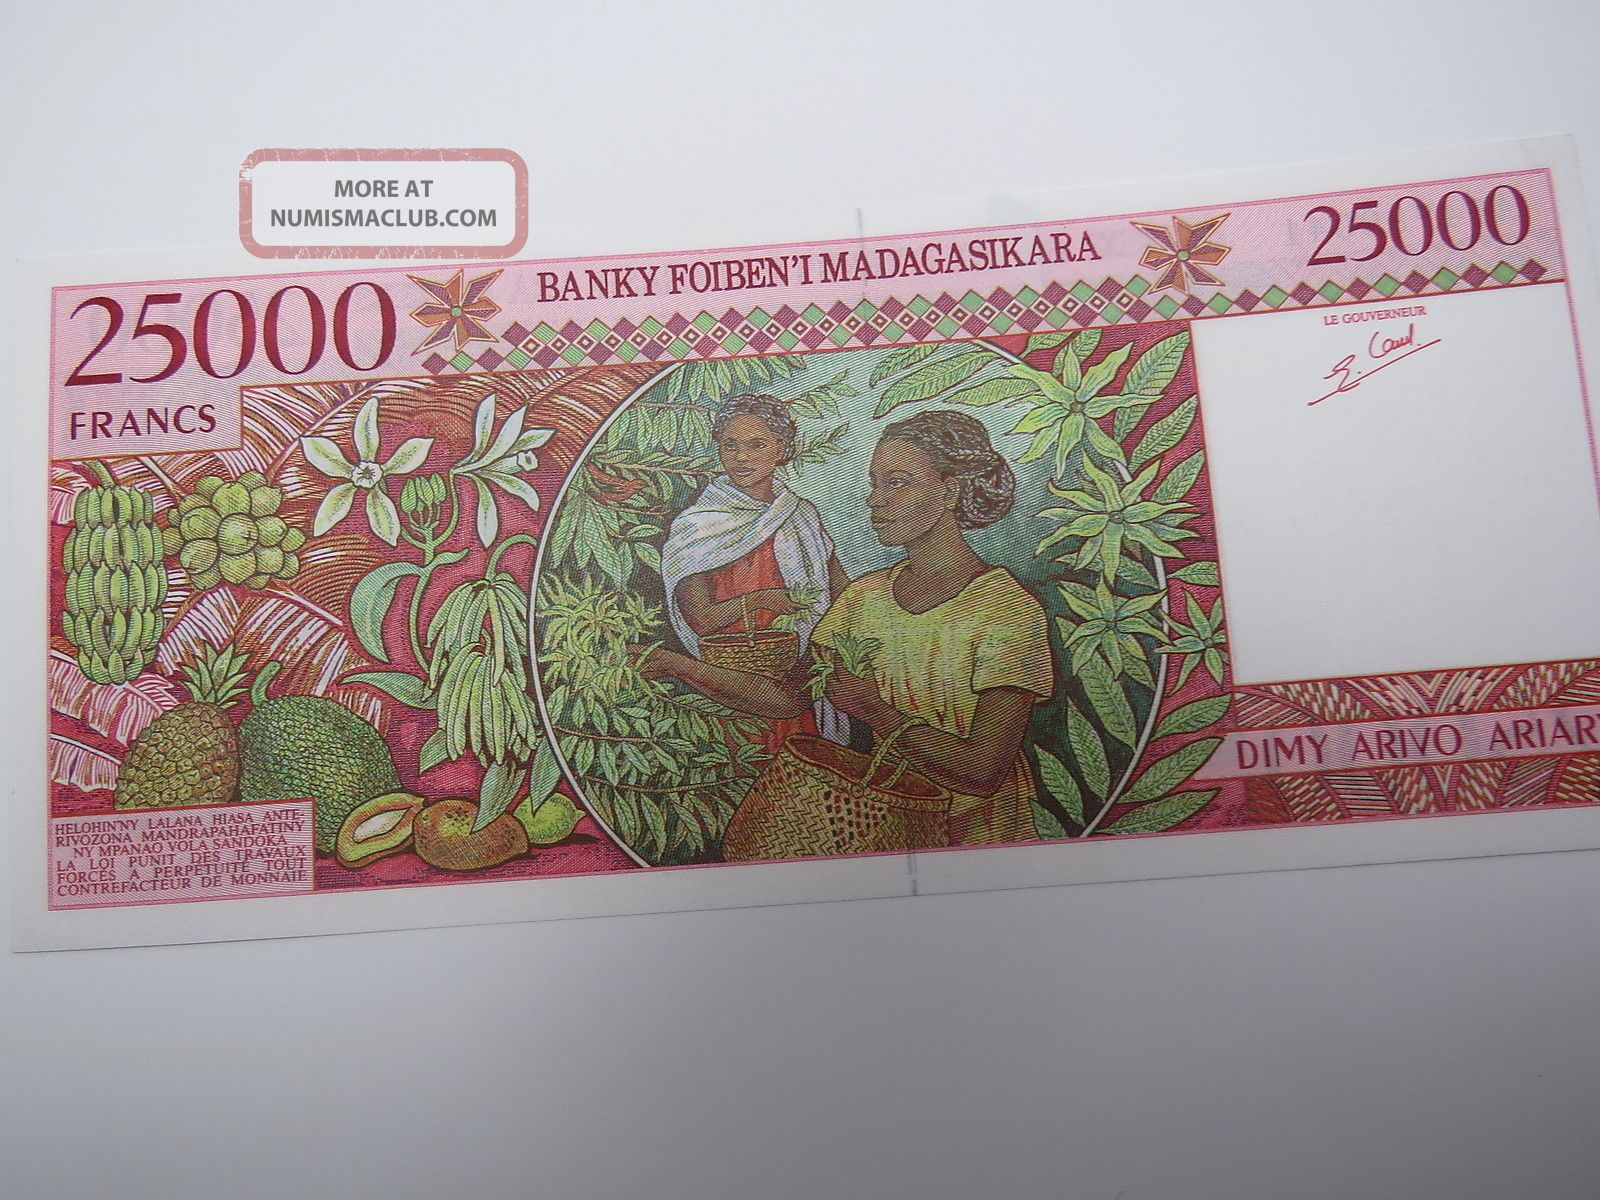 Madagascar 25000 Francs (1998) B Pick 82 Unc Banknote. Africa photo